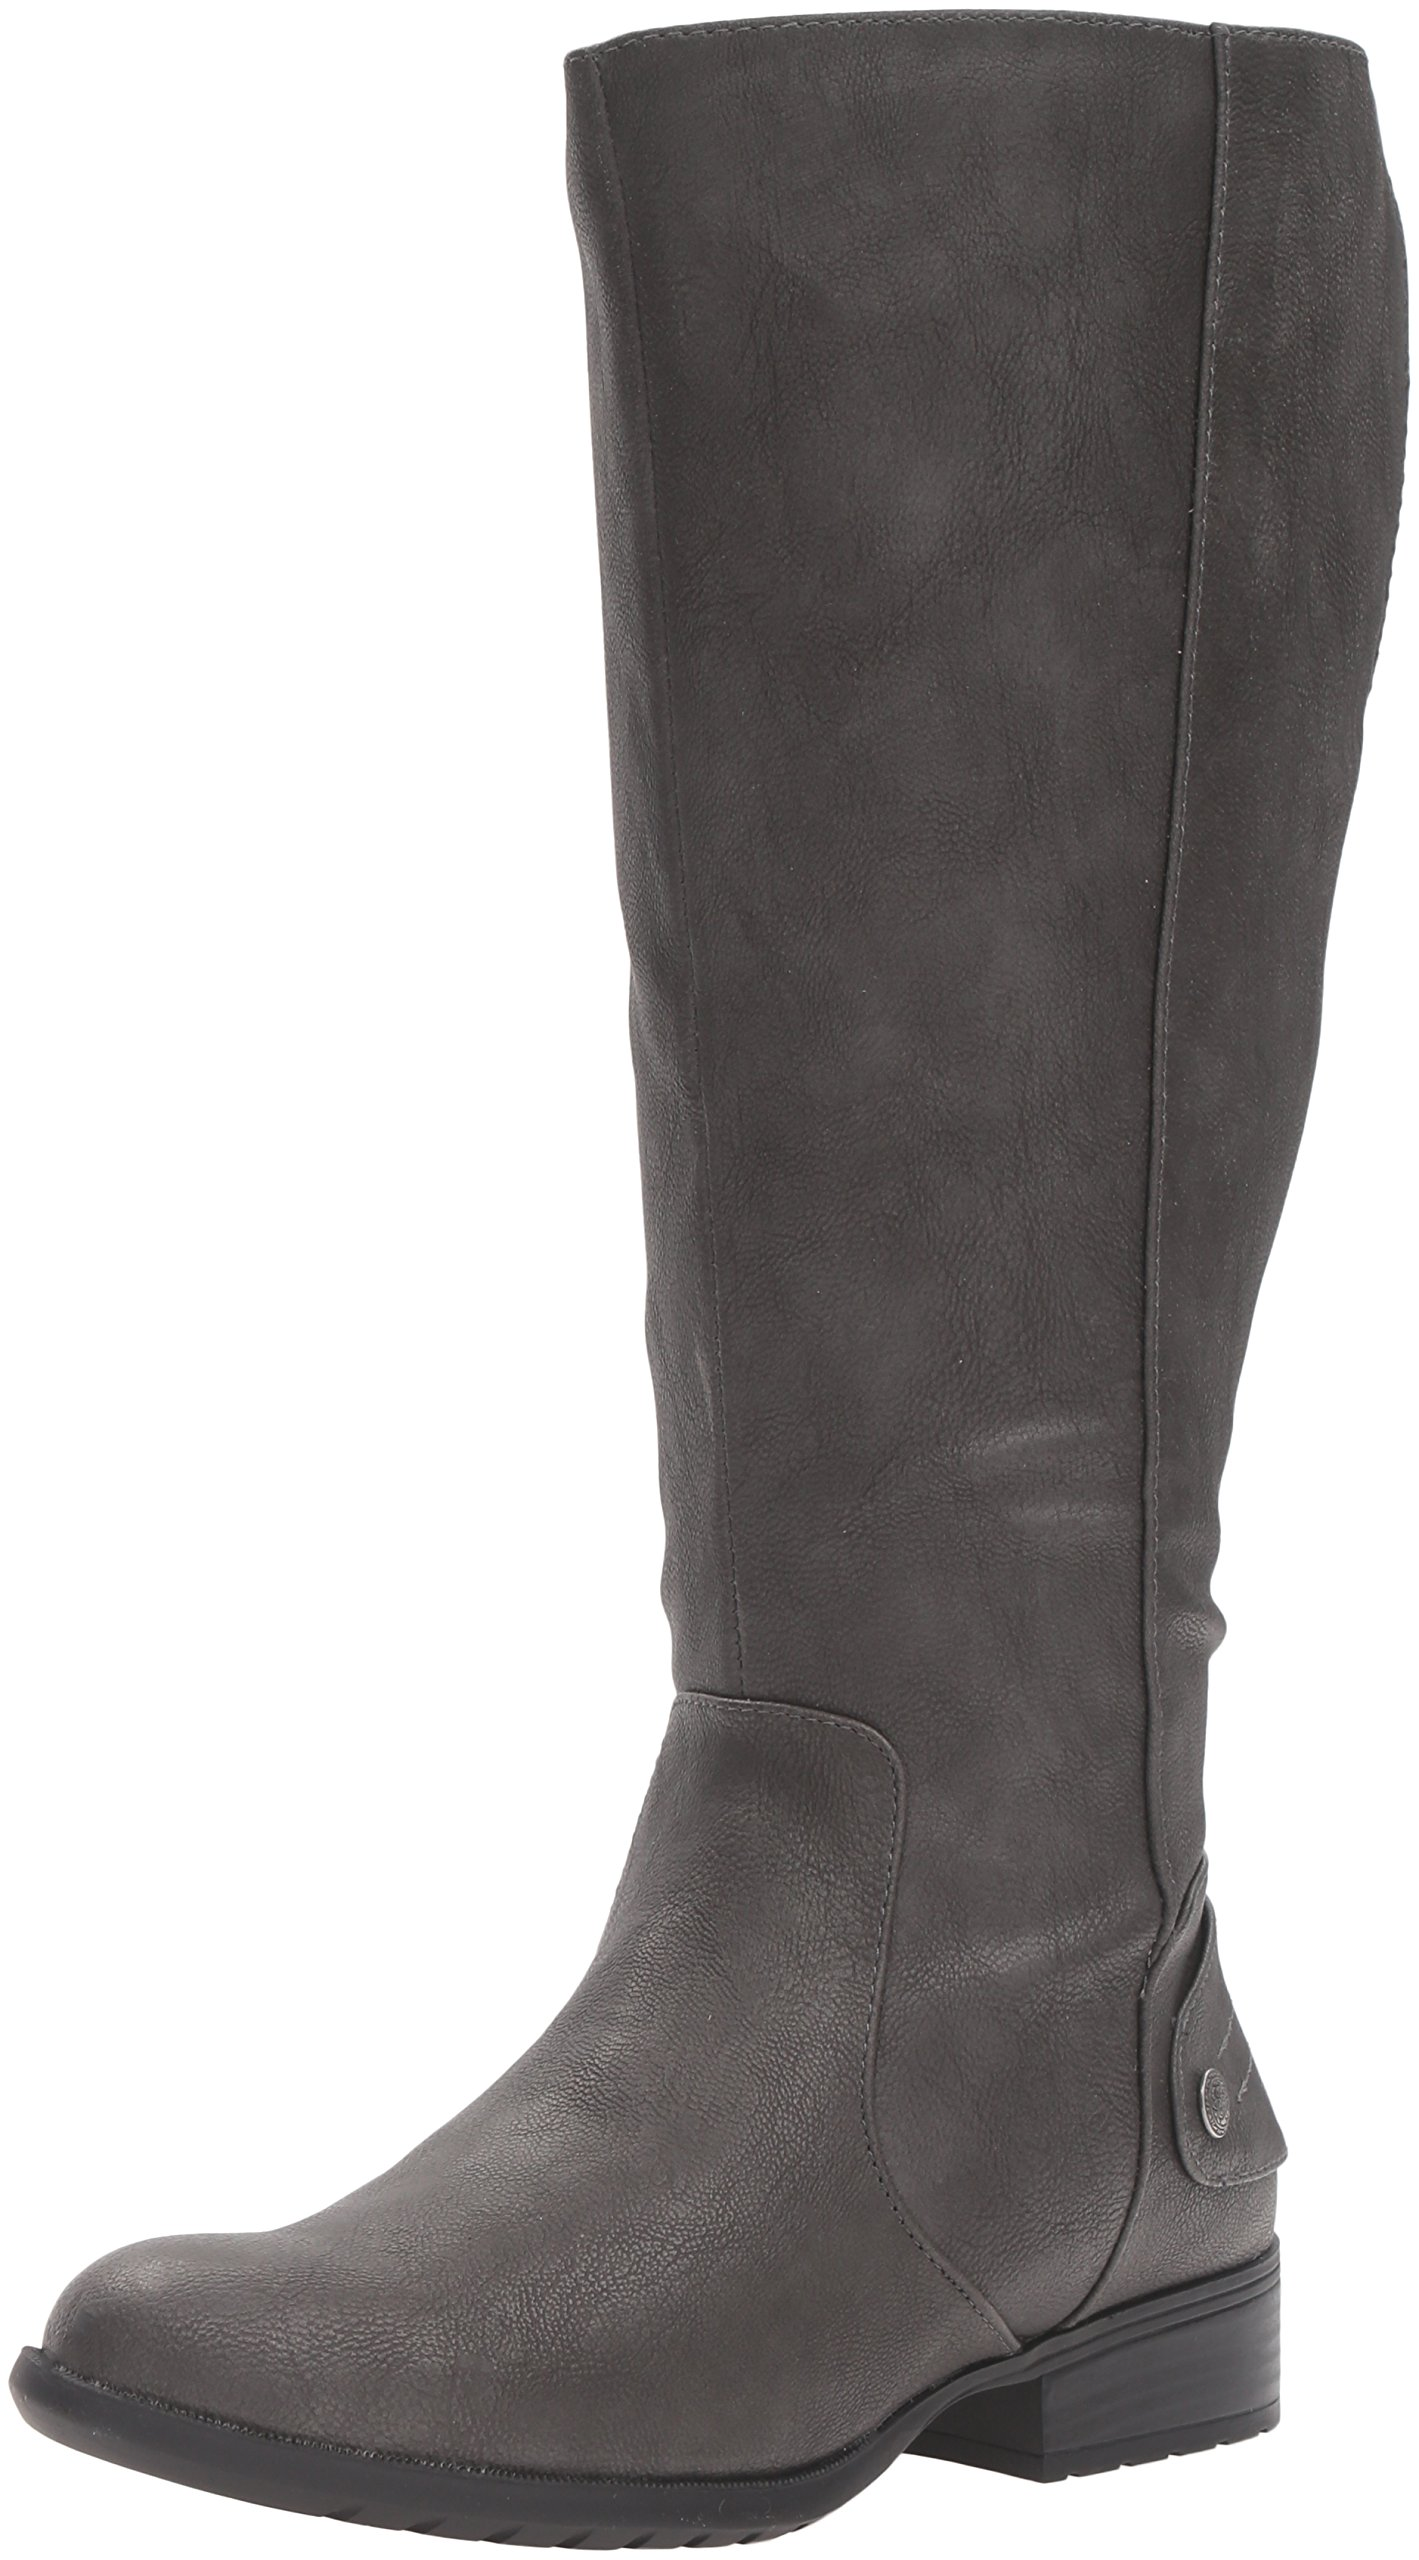 LifeStride Women's Xandywc Riding Boot- Wide Calf, Dark Grey, 11 W US